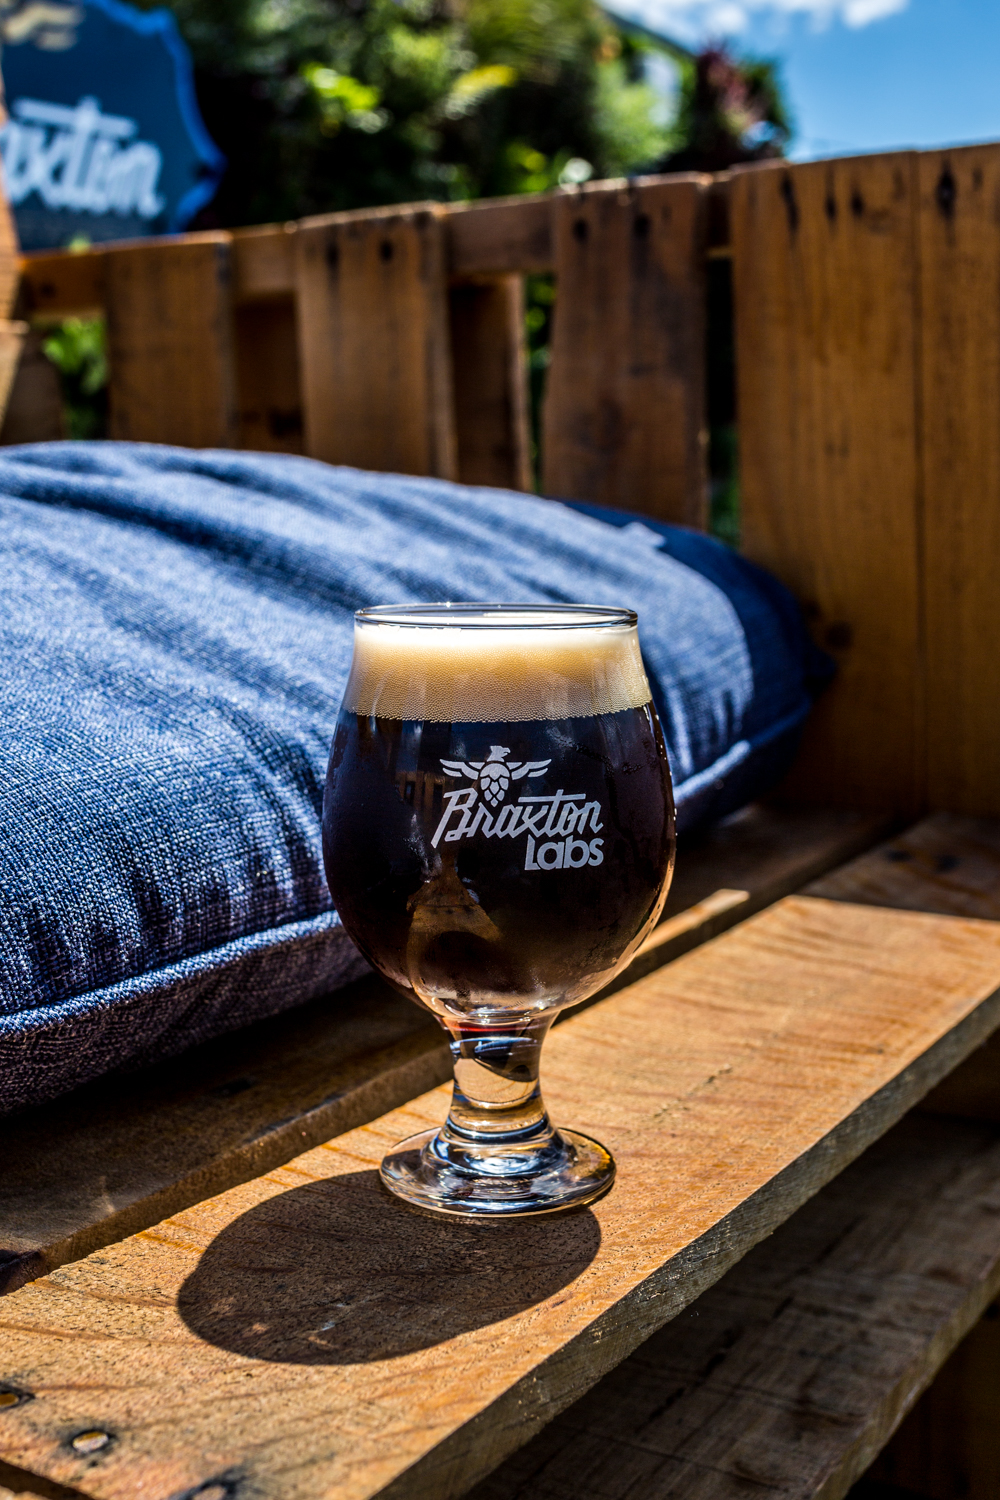 Blown Gasket Robust Porter / Image: Catherine Viox{ }// Published: 9.1.19